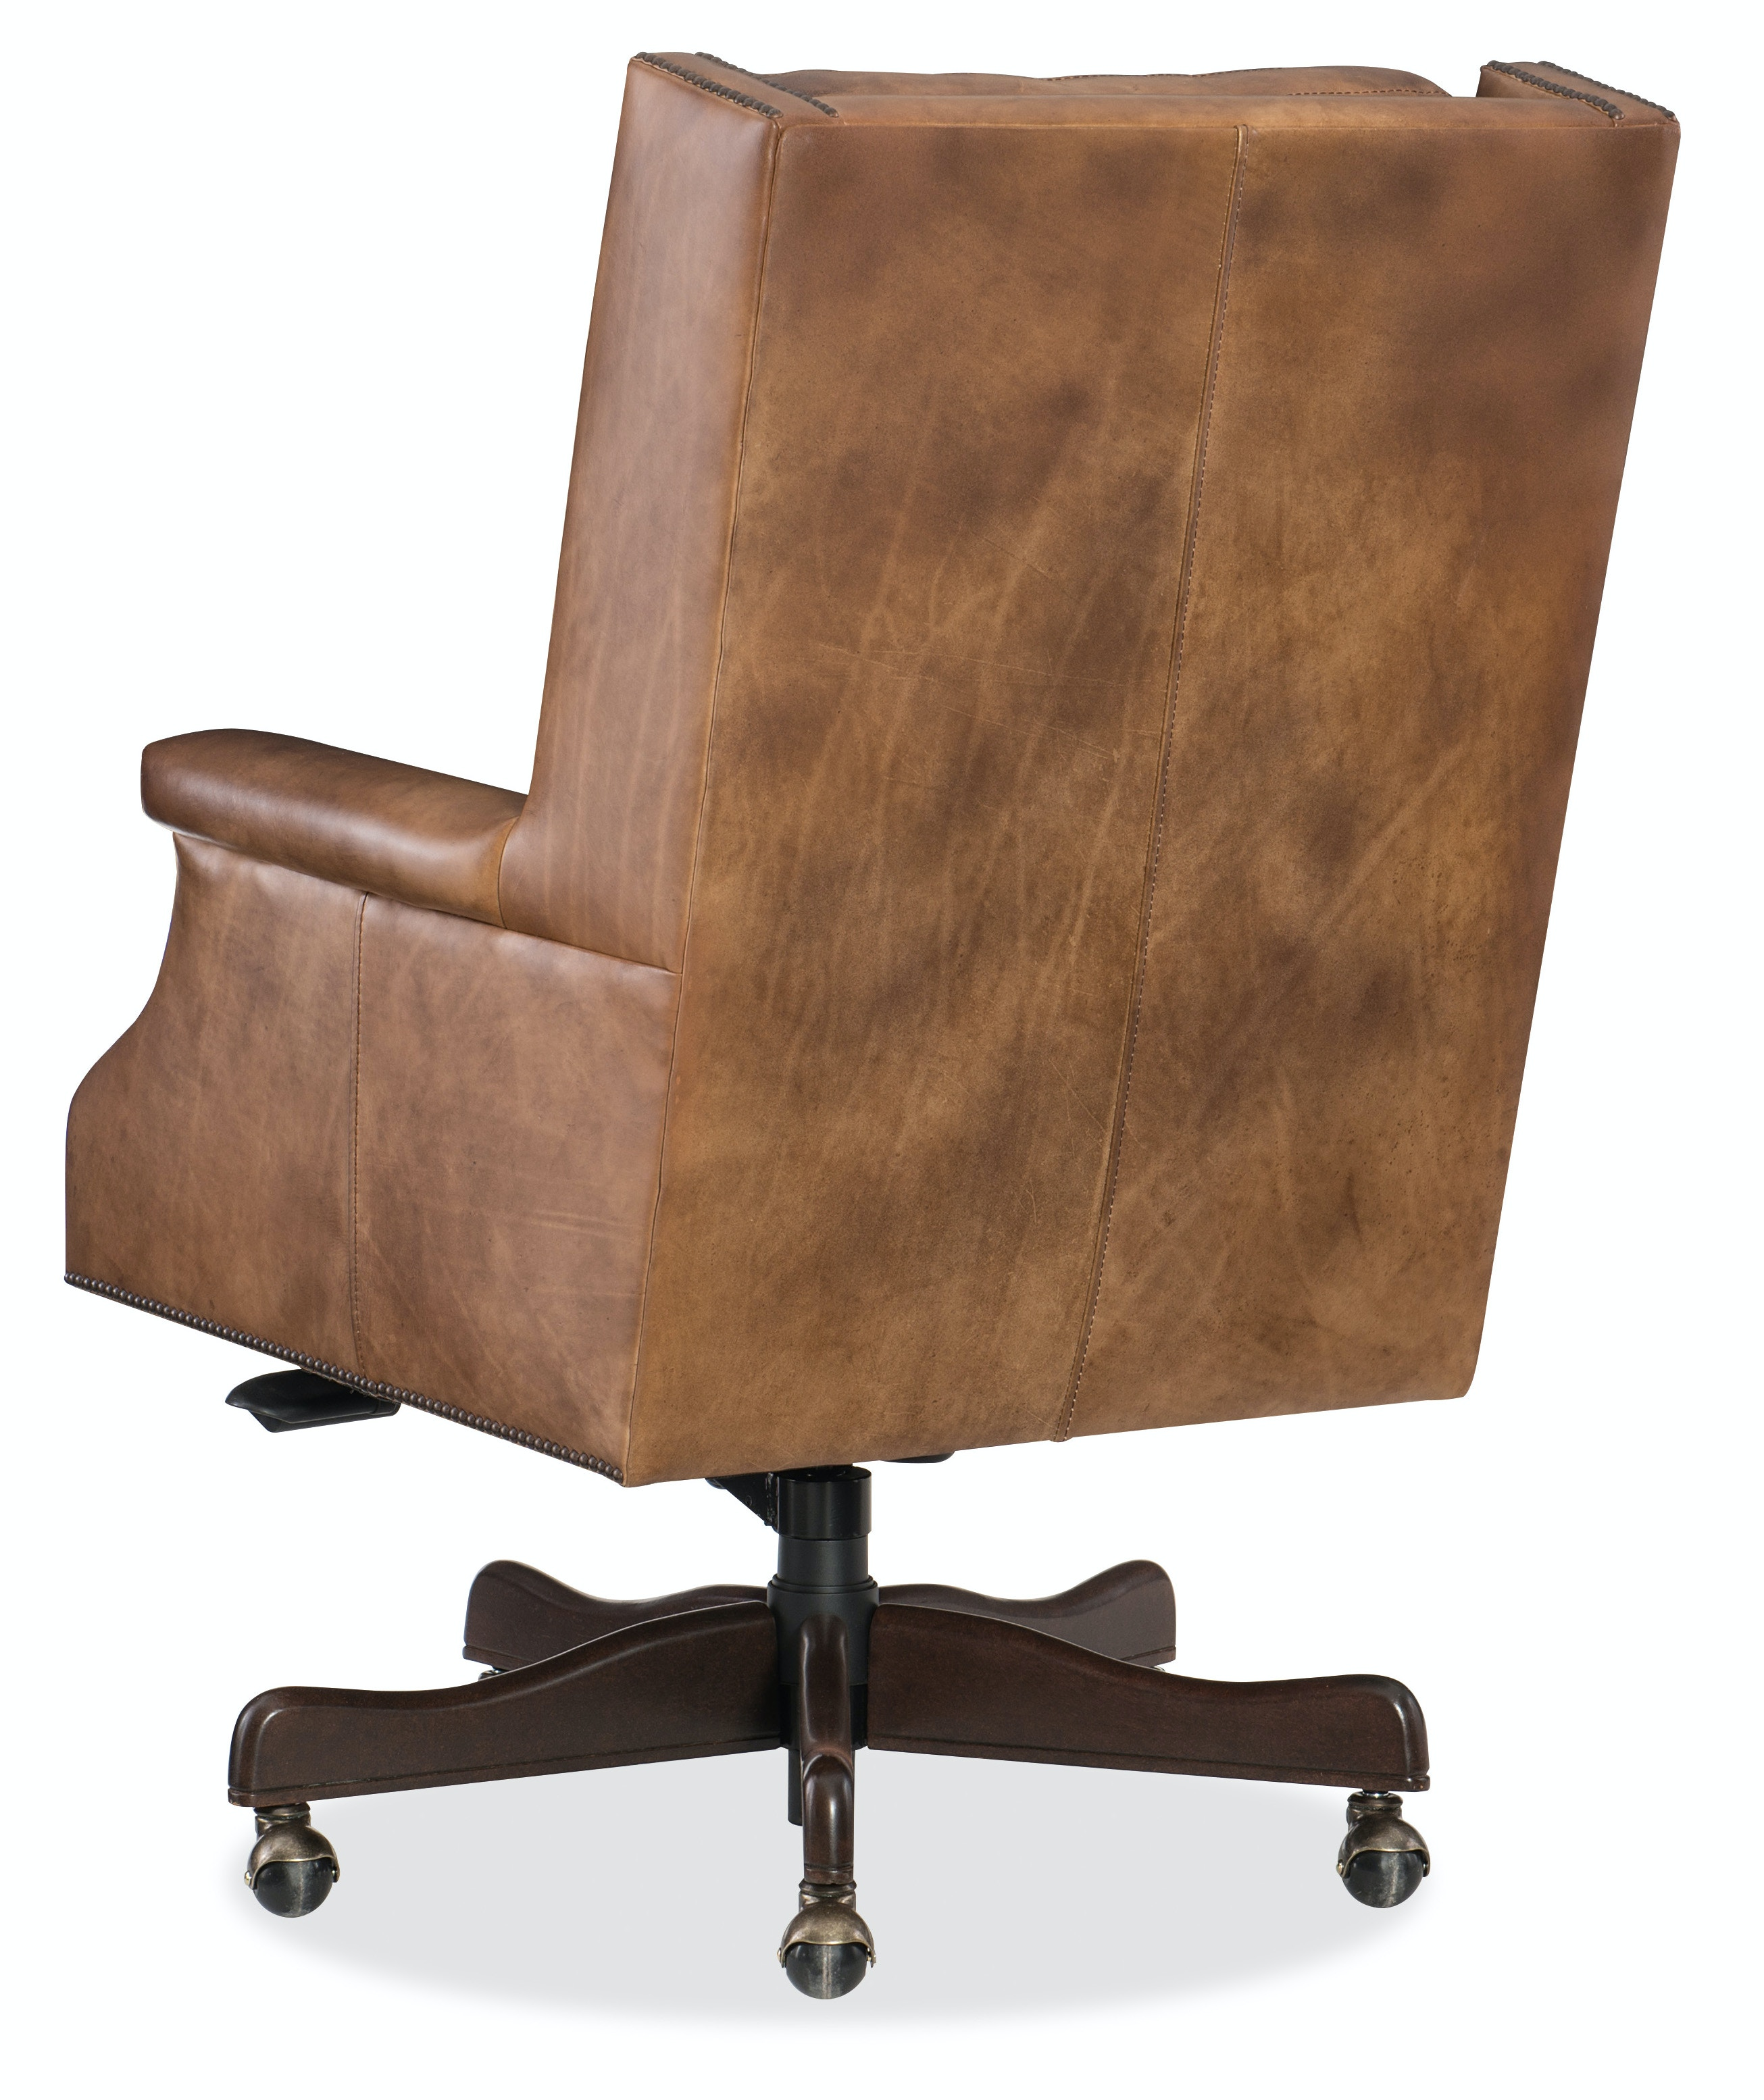 Hooker Furniture Beckett Home Office Chair EC562 083